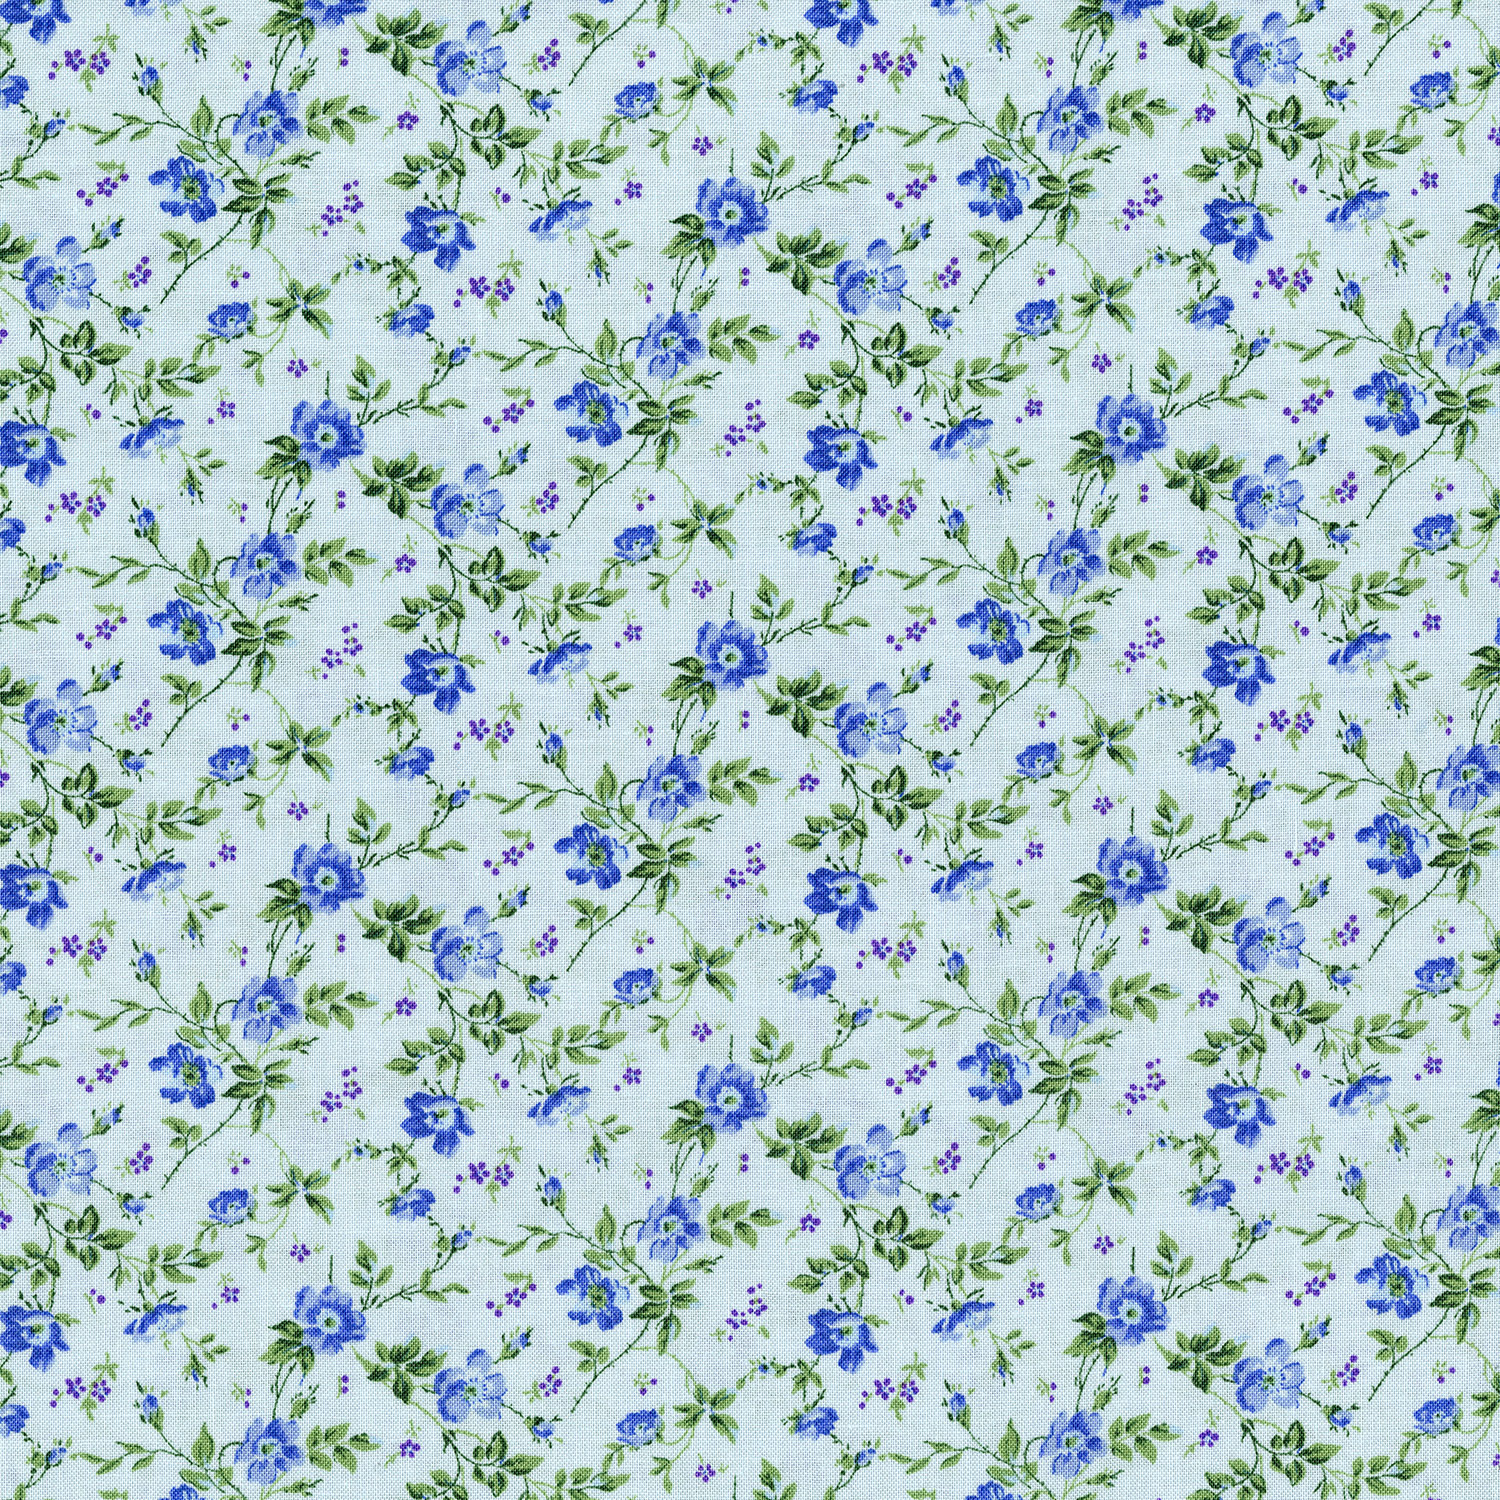 3268-003 DAINTY BLOOMS-BLUEBELL